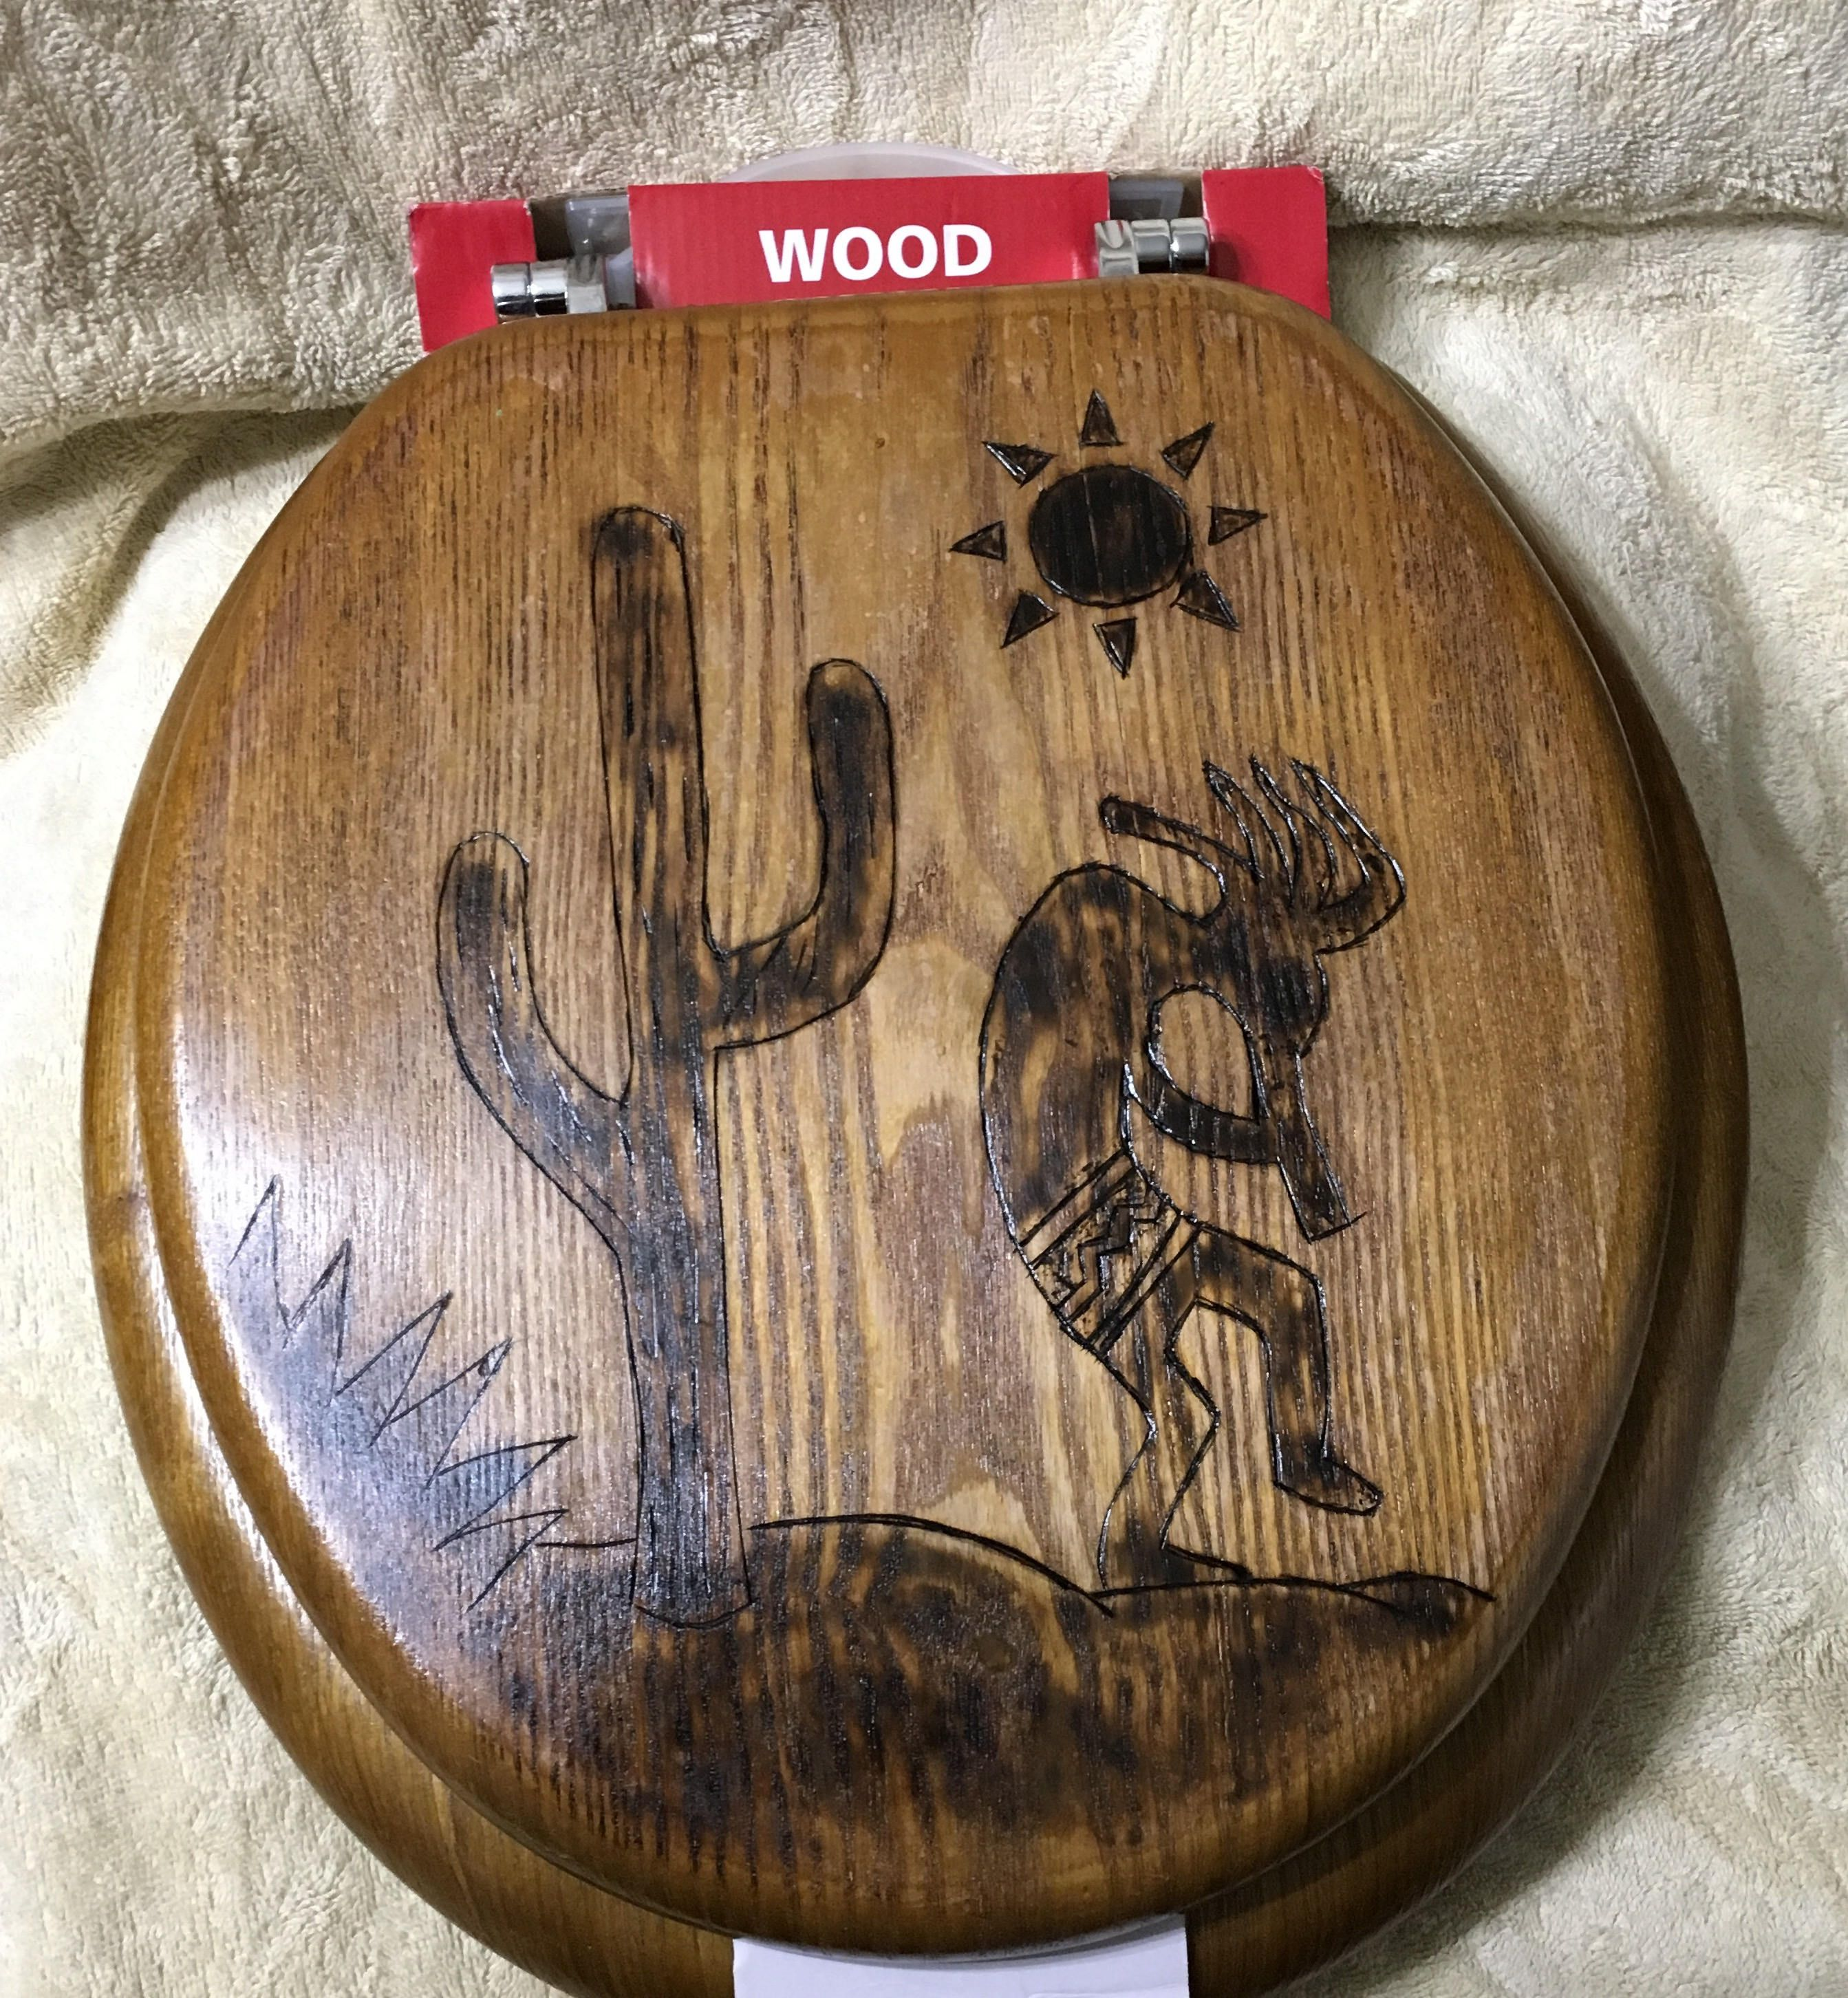 Hand carved wood toilet seat 14 x 15 inch fits standard size toilets Comes  with all15 Inch Toilet Seat  Toilet SeatToilet Buying Guide  Round toilet  . Toilet Seat 17 X 14. Home Design Ideas